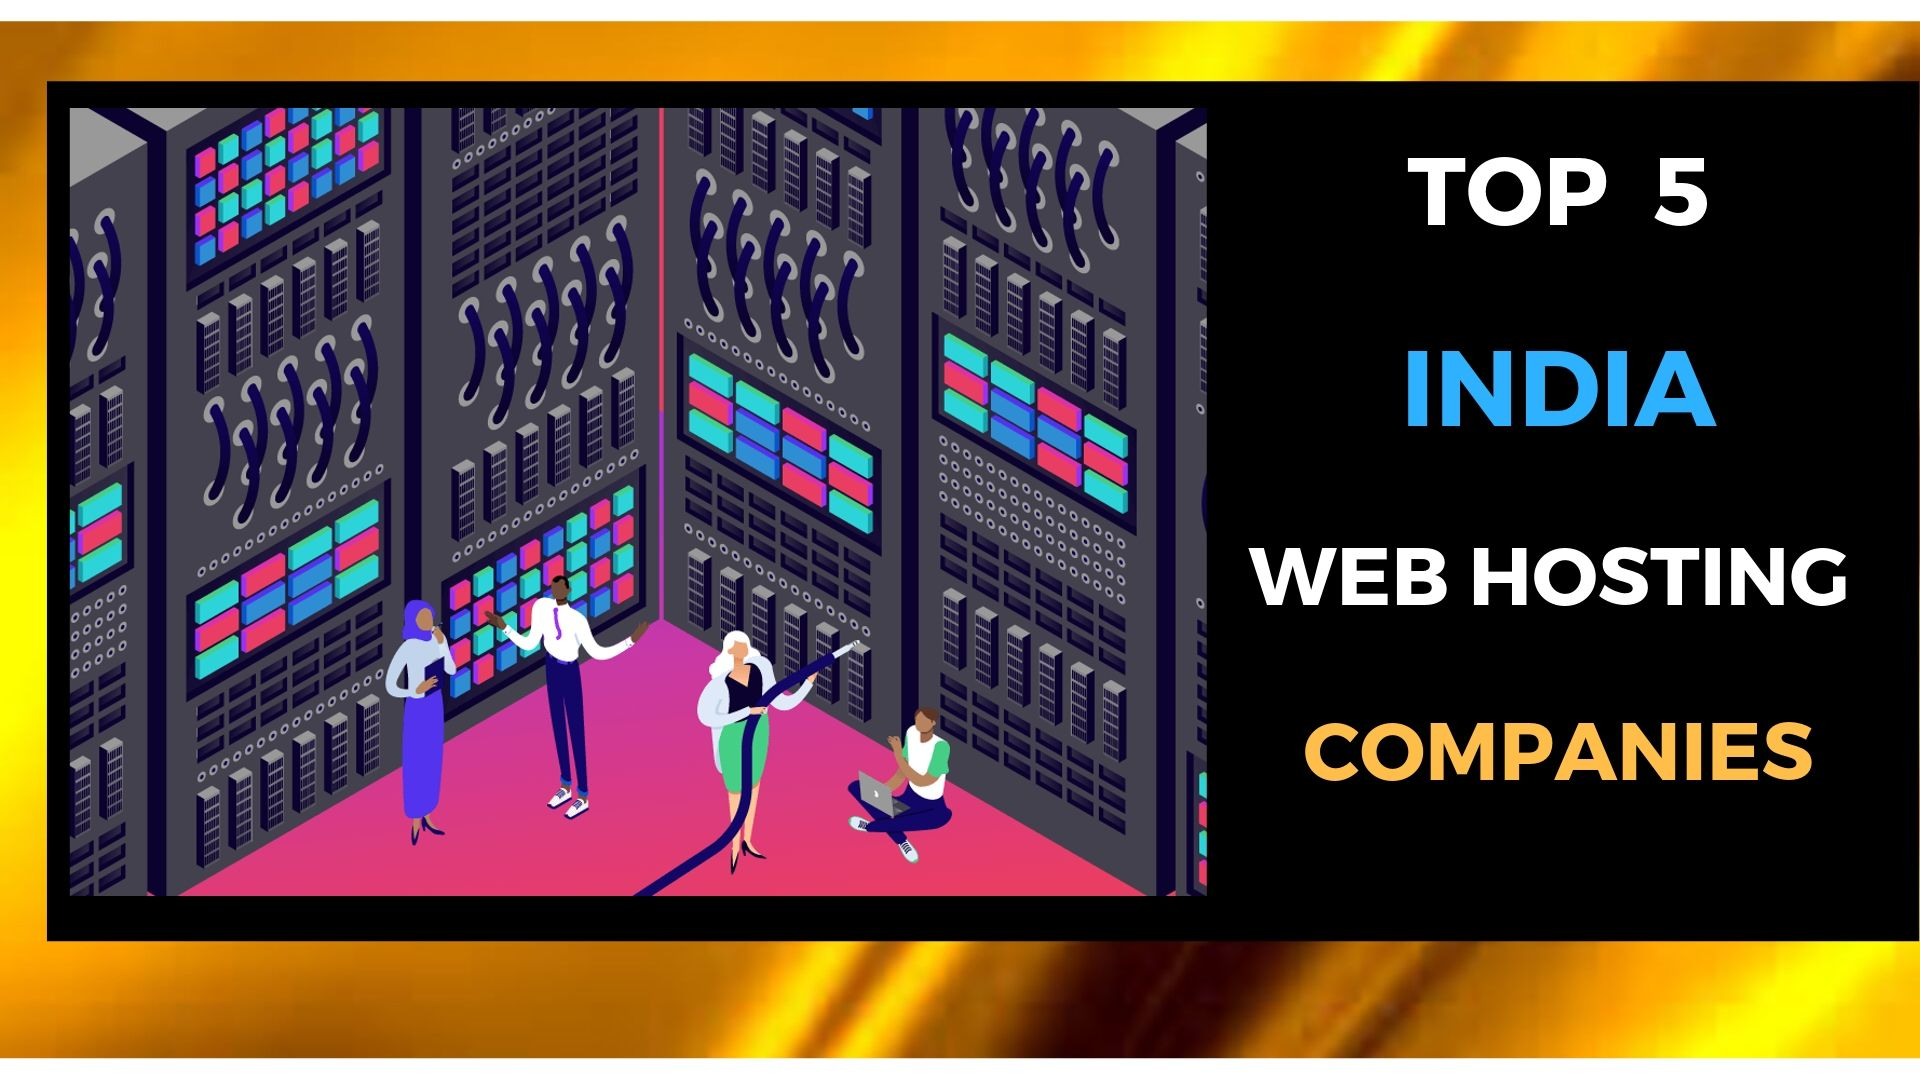 Top 5 India Web Hosting Companies